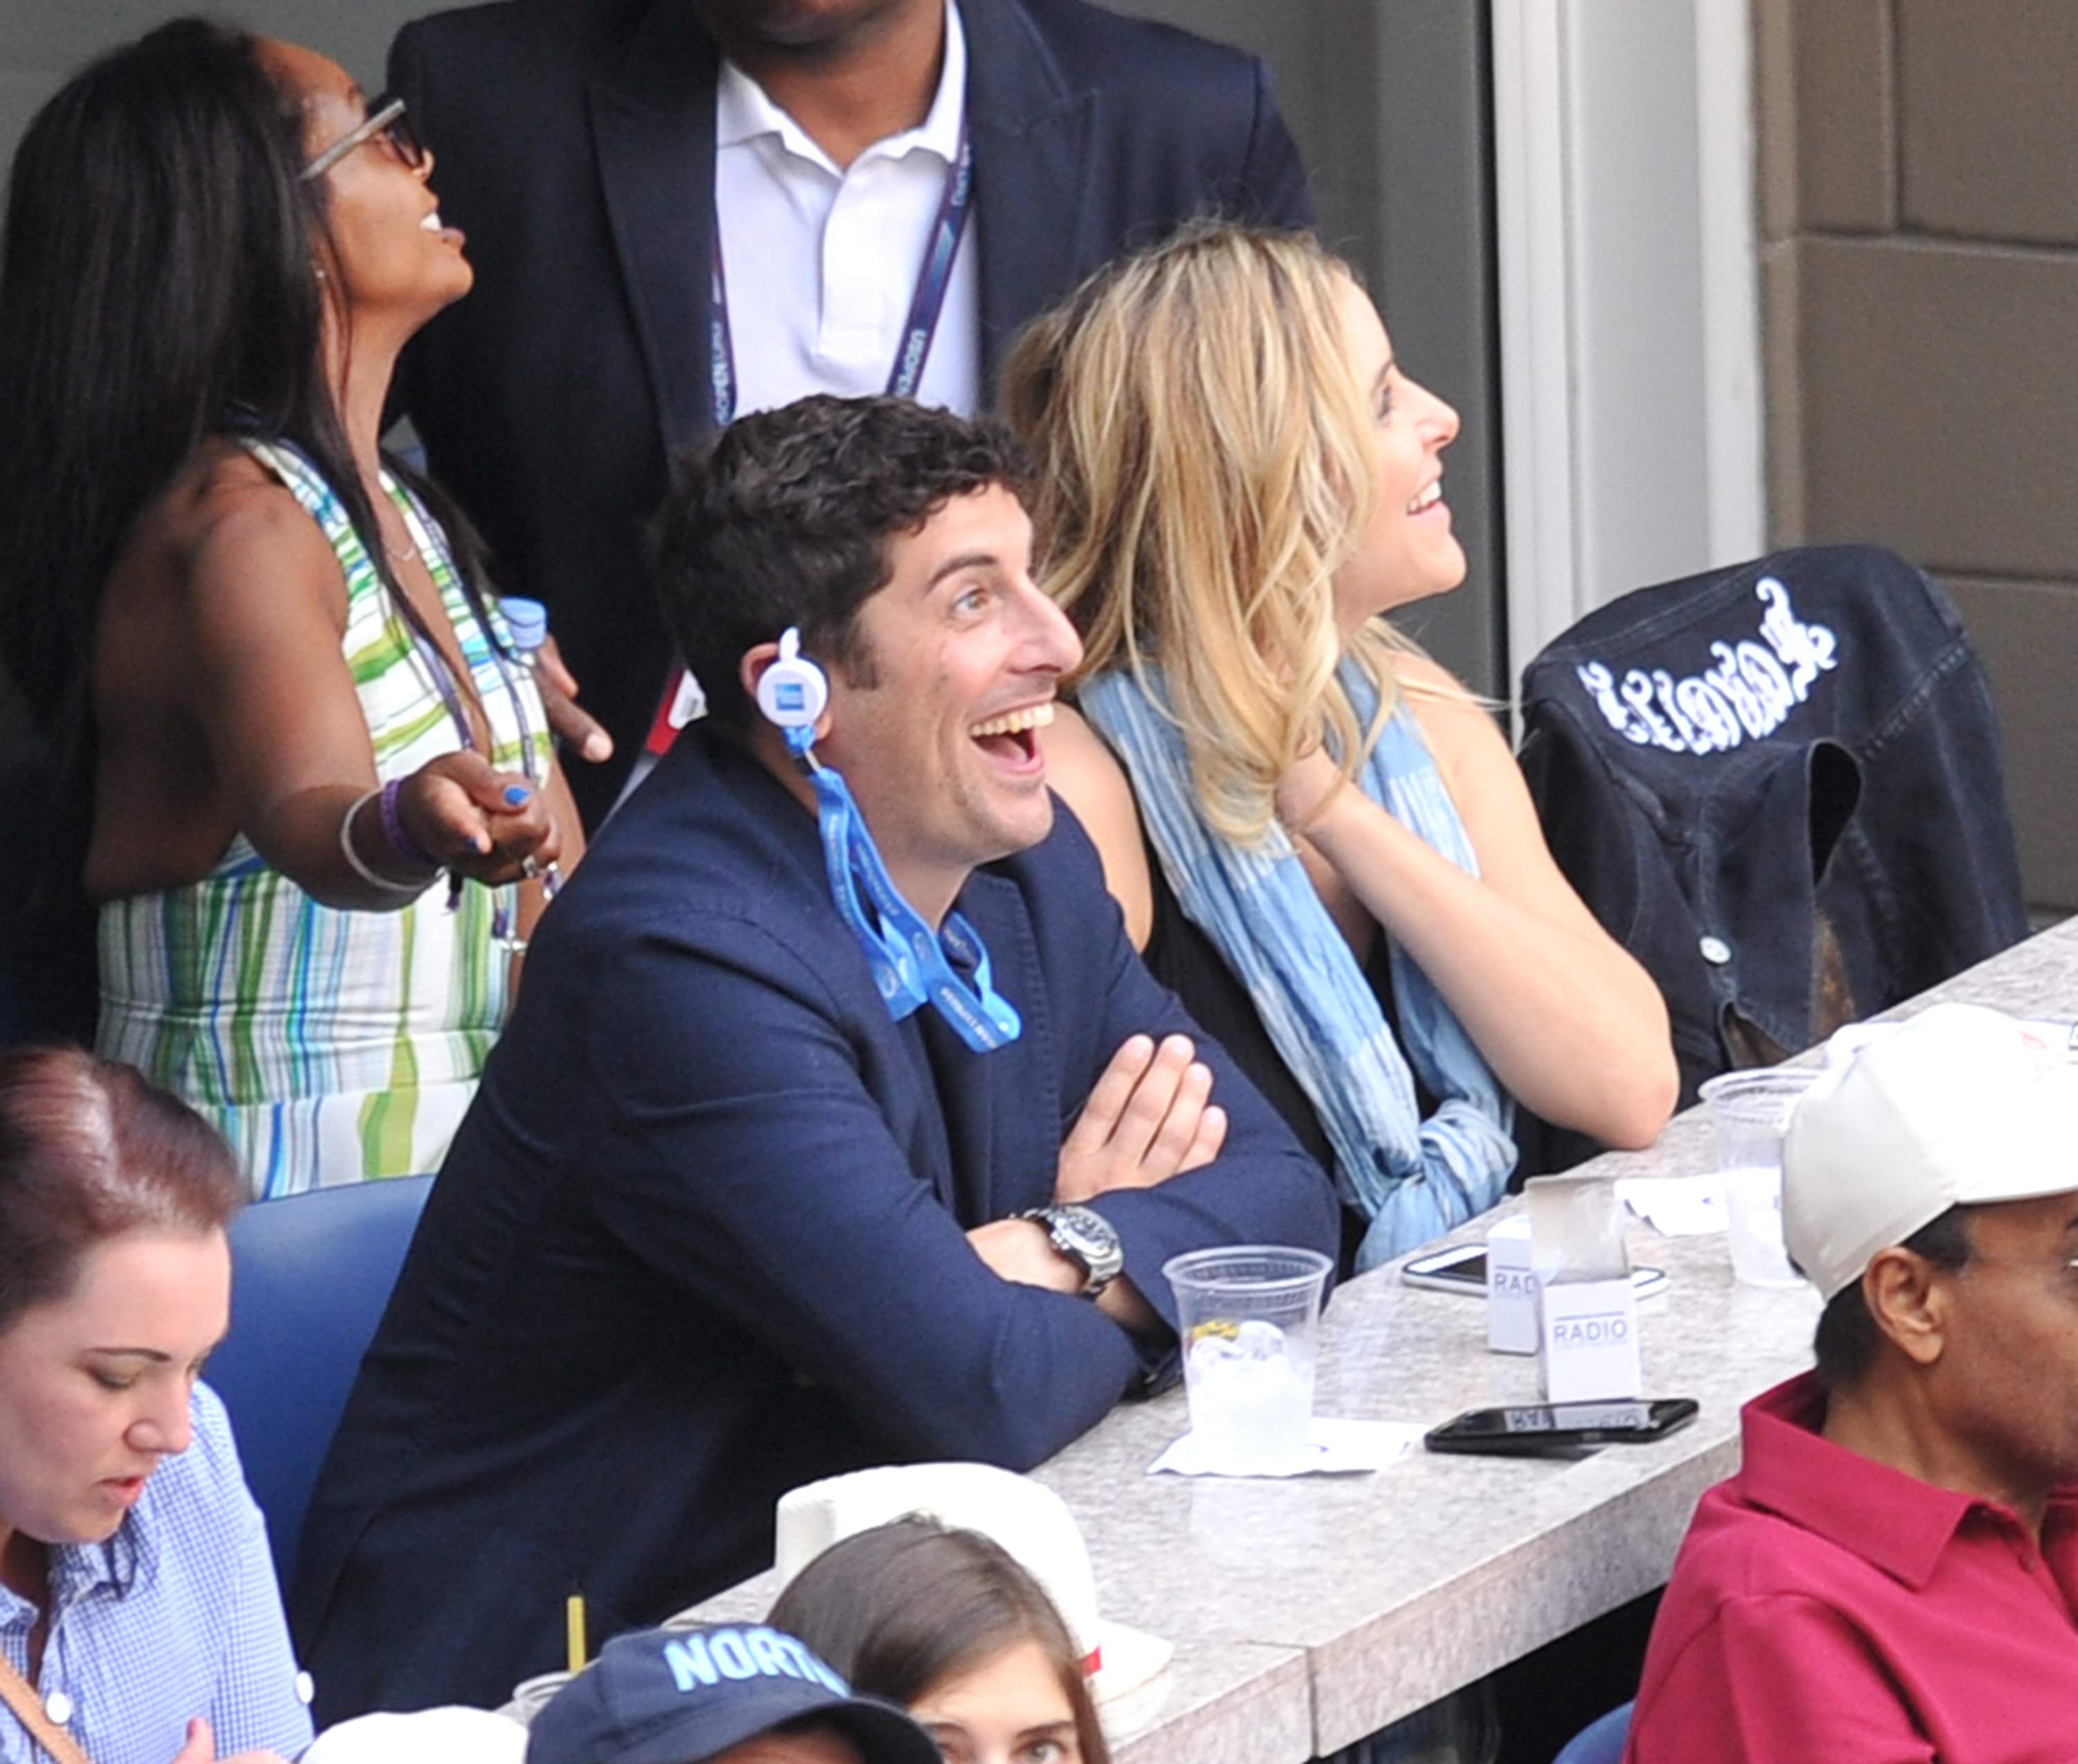 Jason Biggs and Jenny Mollen attend The US Open Tennis Mens Finals in New York City on Sept. 10, 2017.